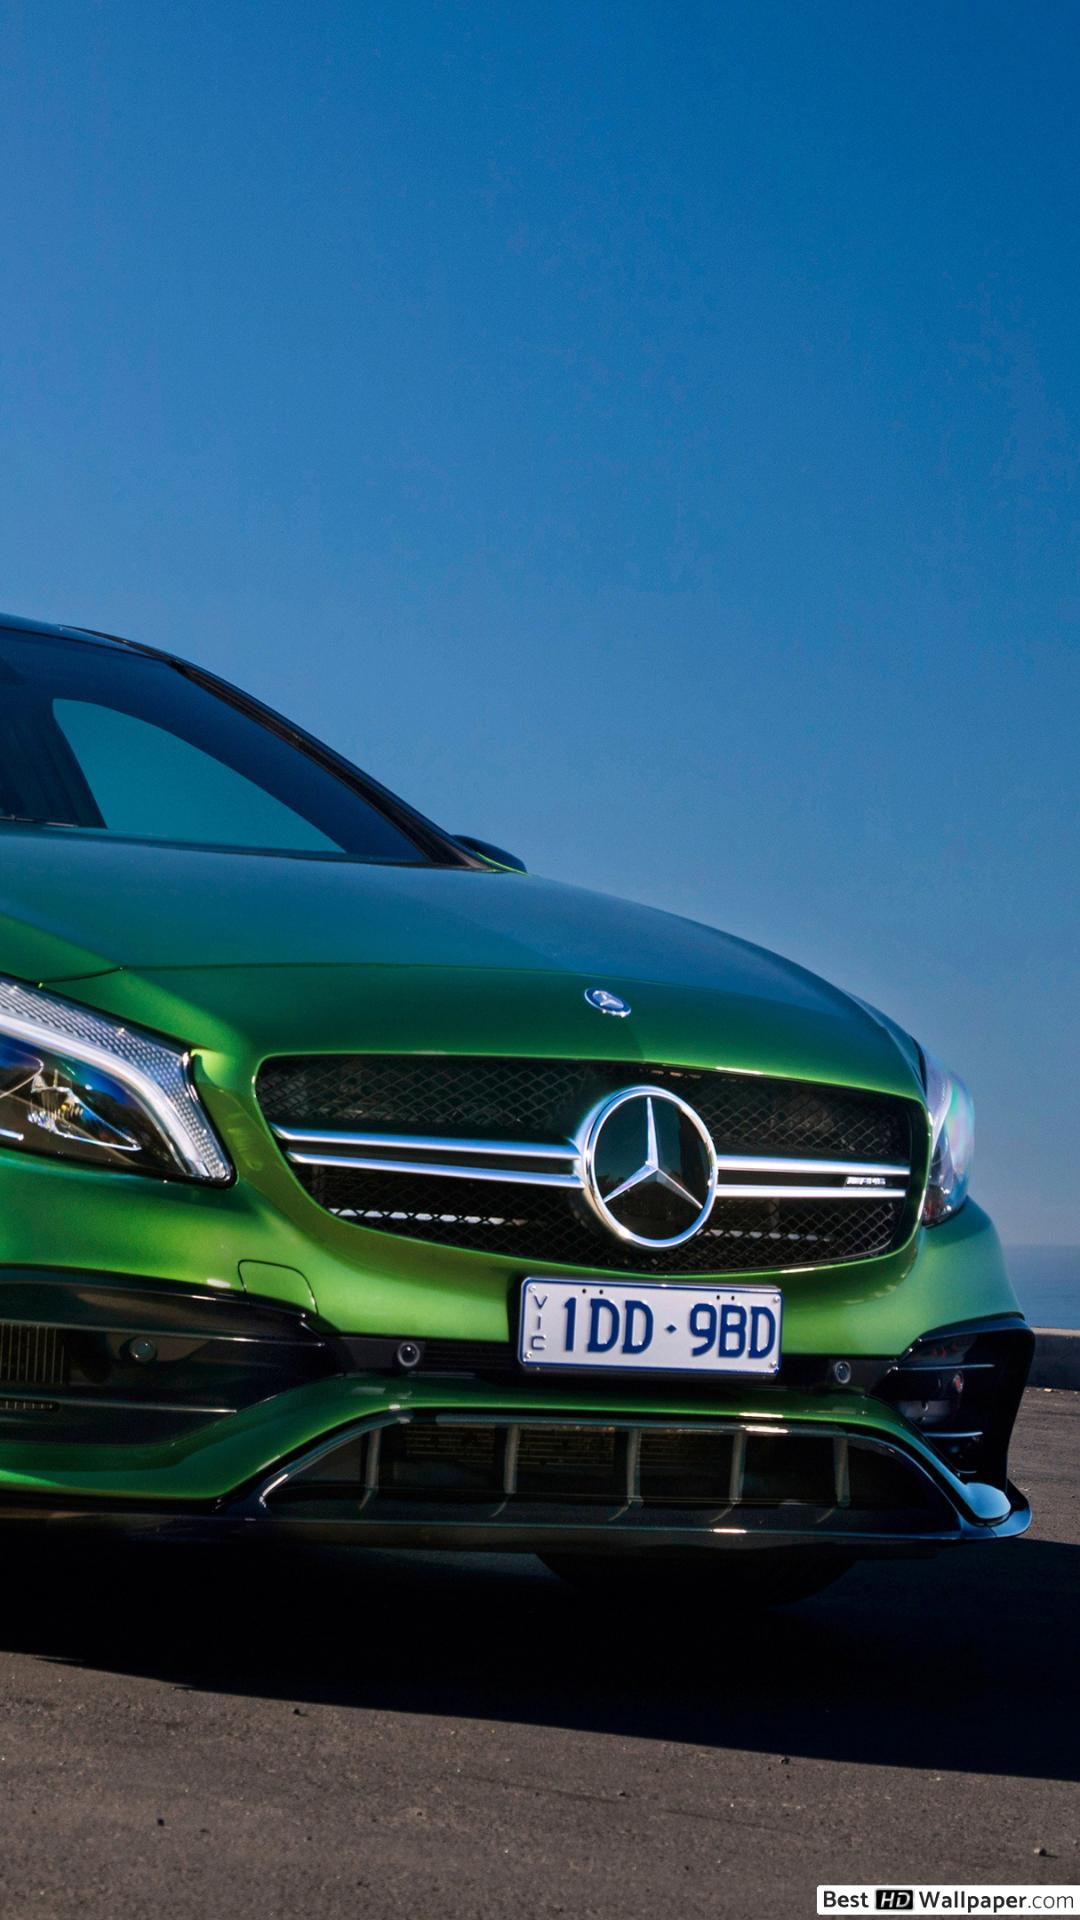 Apple Iphone 7 Plus, - Mercedes A Class Amg Green , HD Wallpaper & Backgrounds